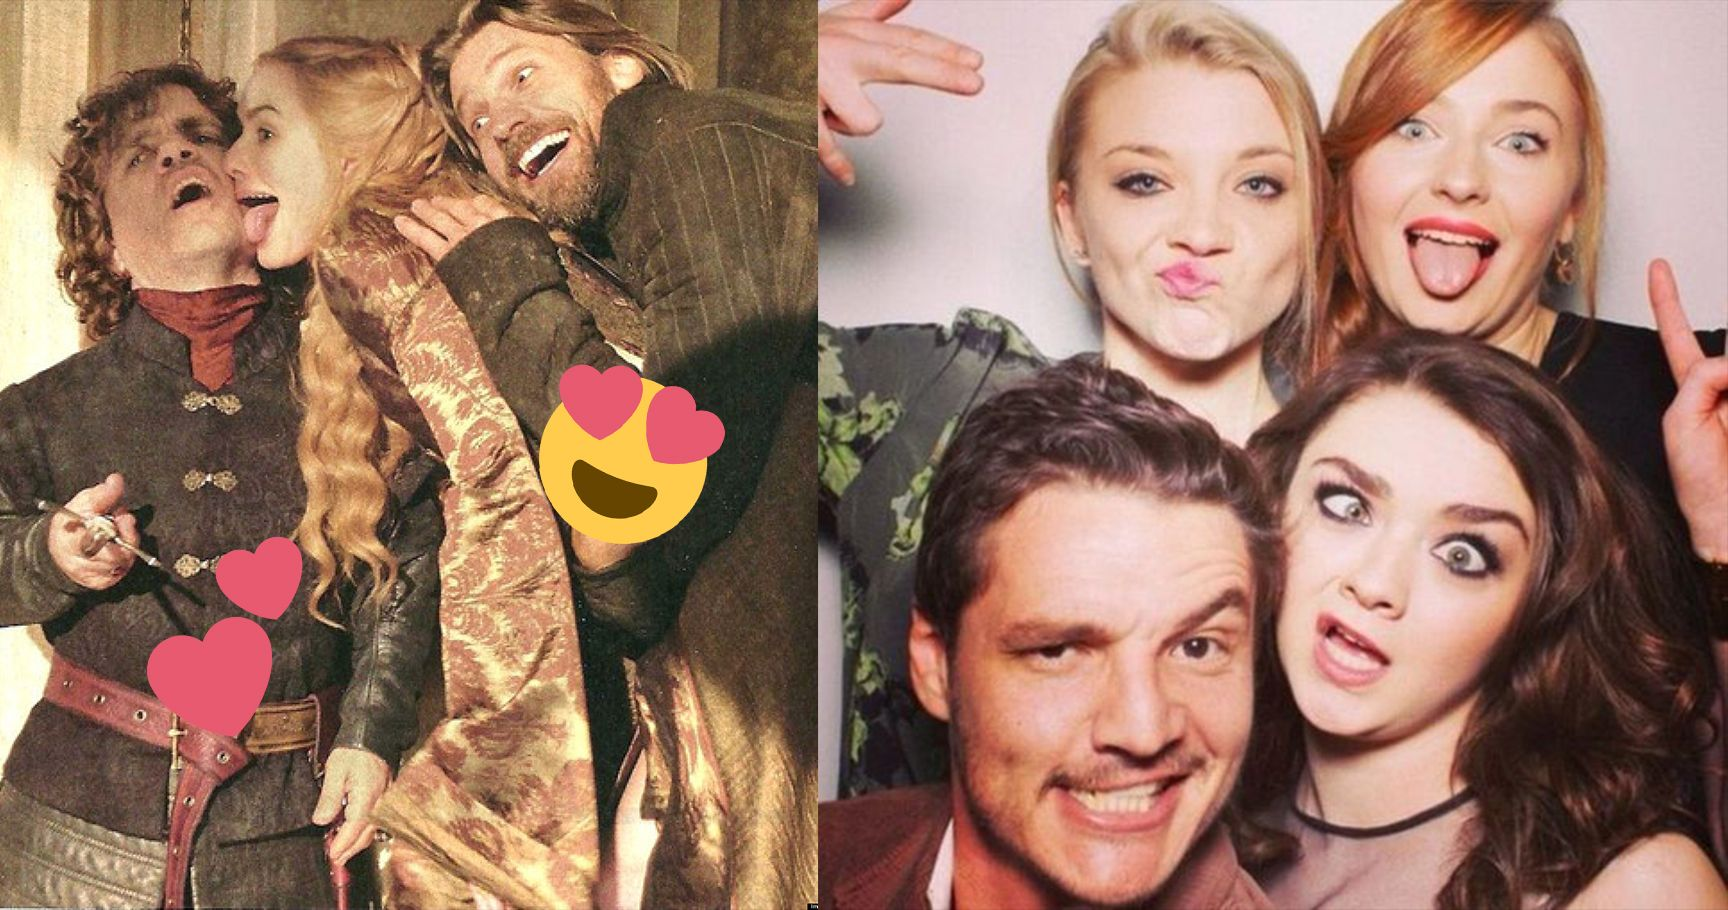 15 Behind The Scenes Moments On Game Of Thrones That Will Make You Love The Show Even More